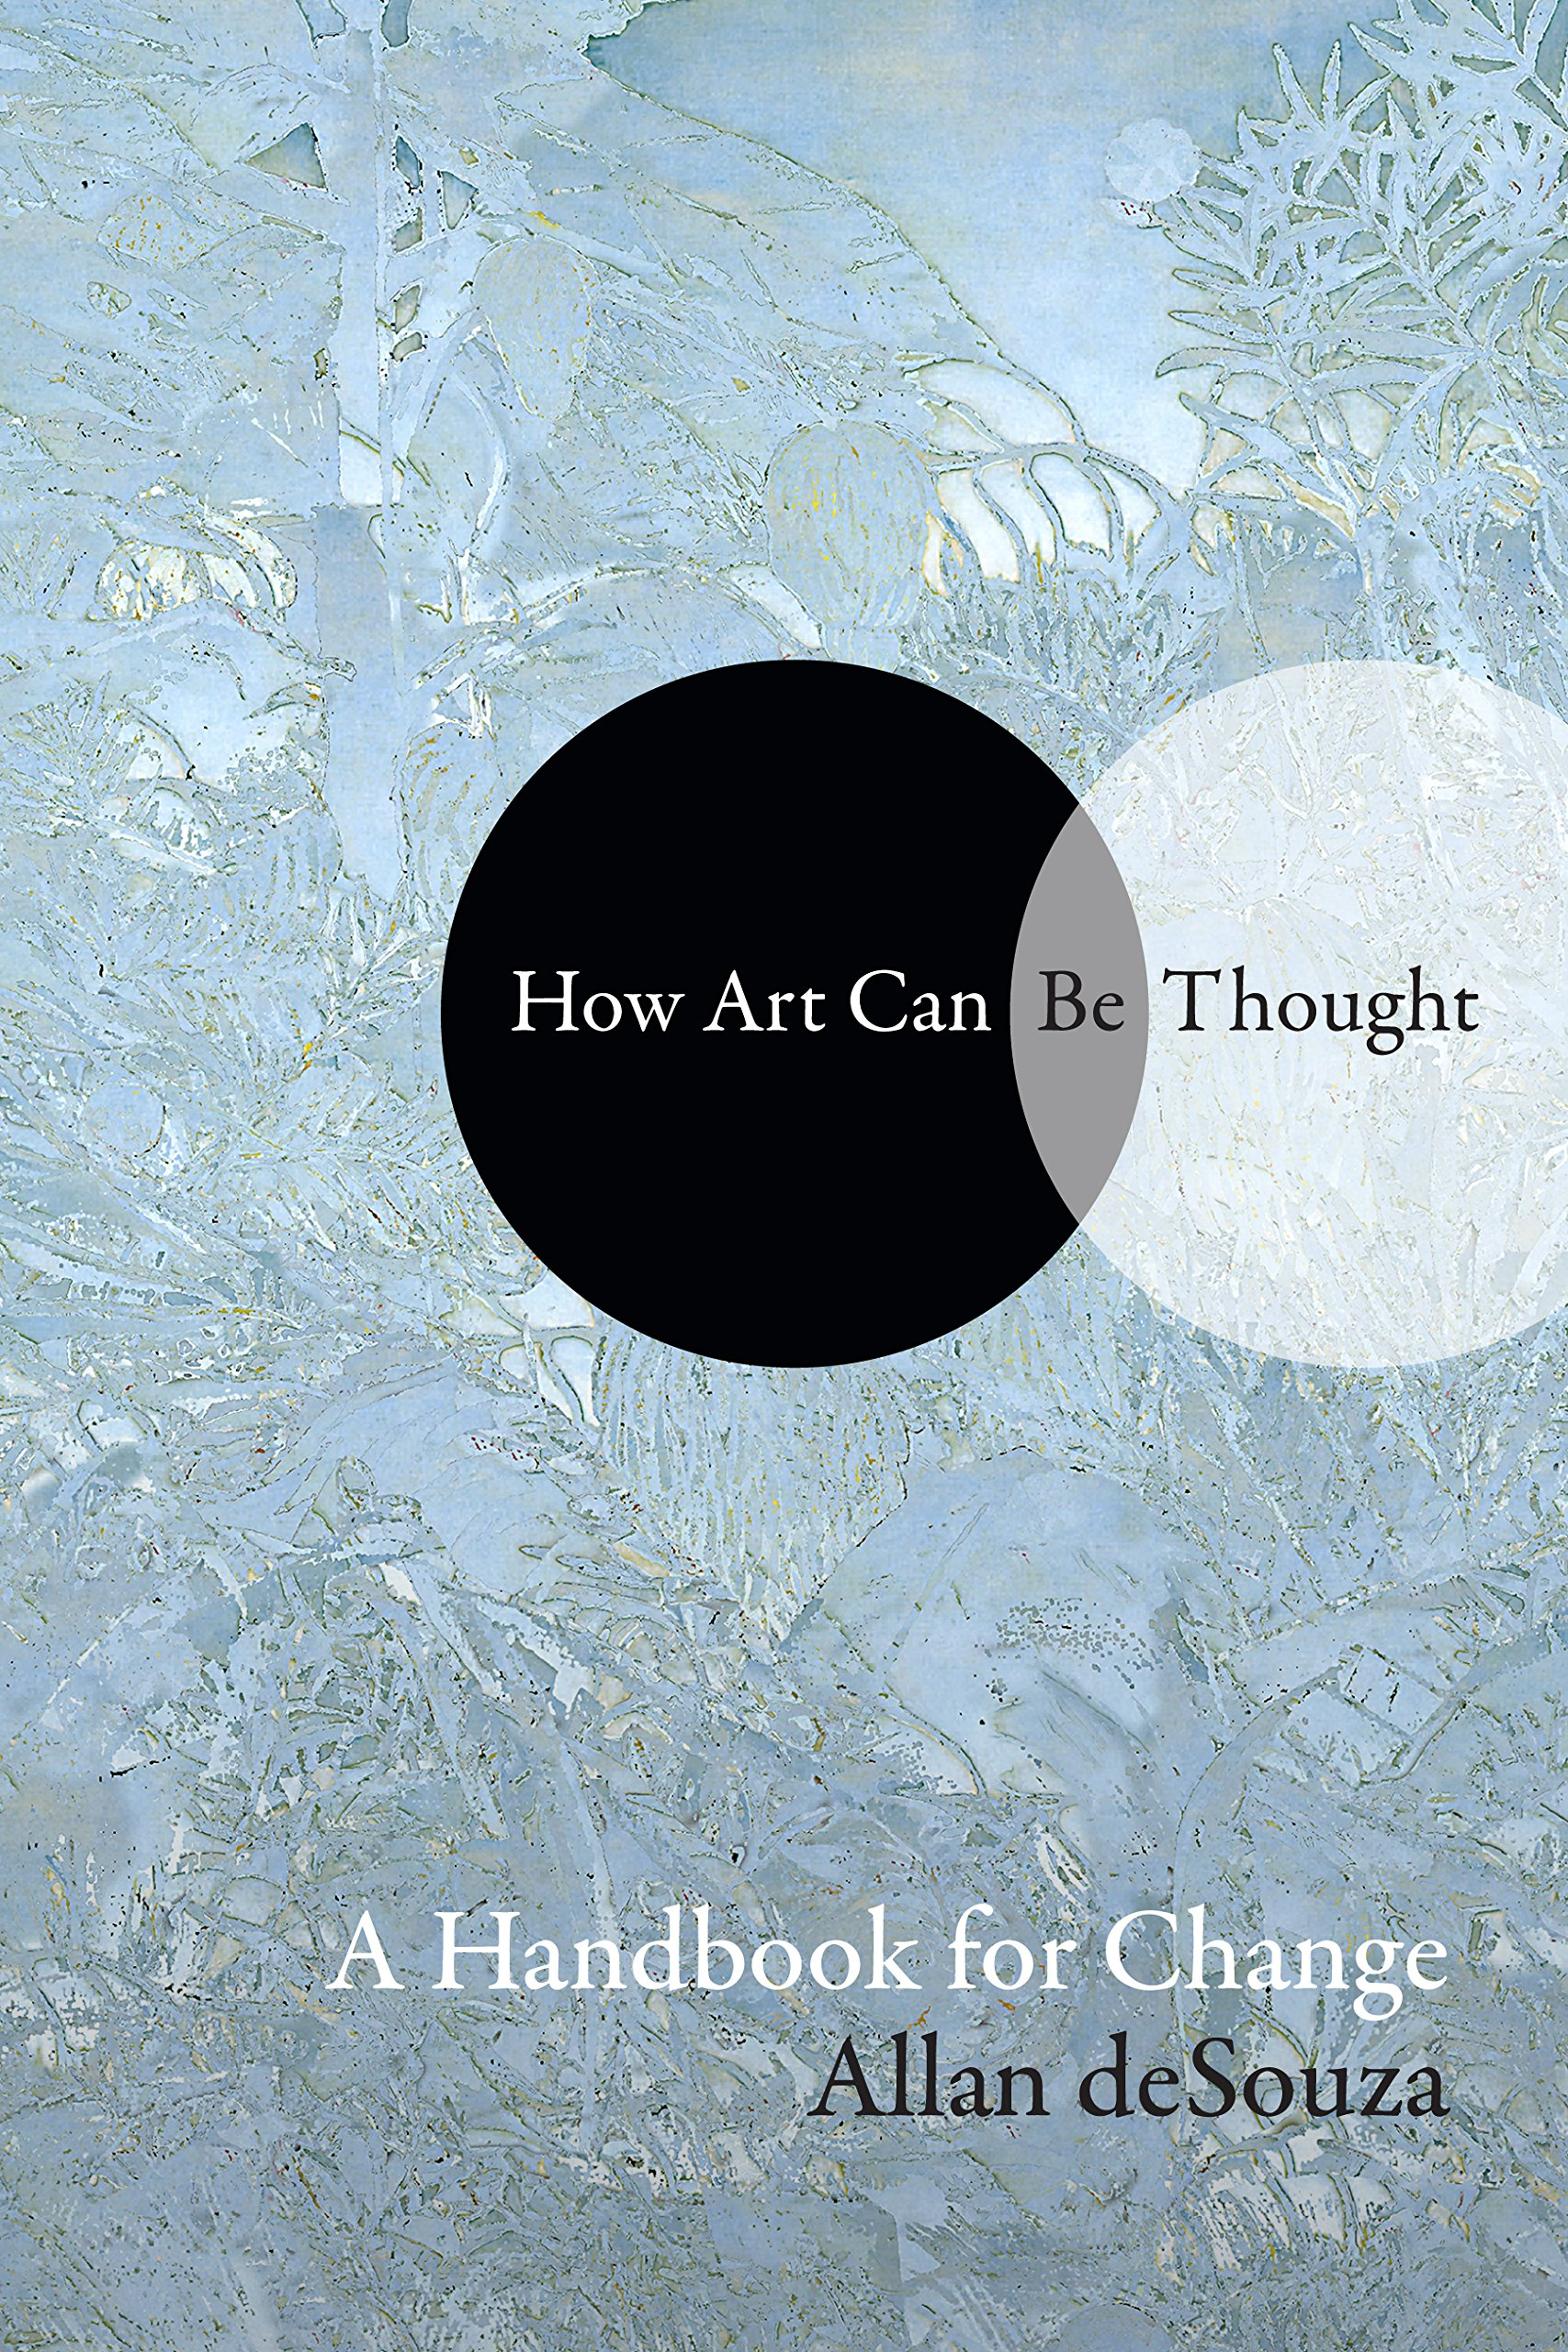 How Art Can Be Thought: A Handbook for Change: Allan deSouza:  9781478000471: Traveller Location: Books